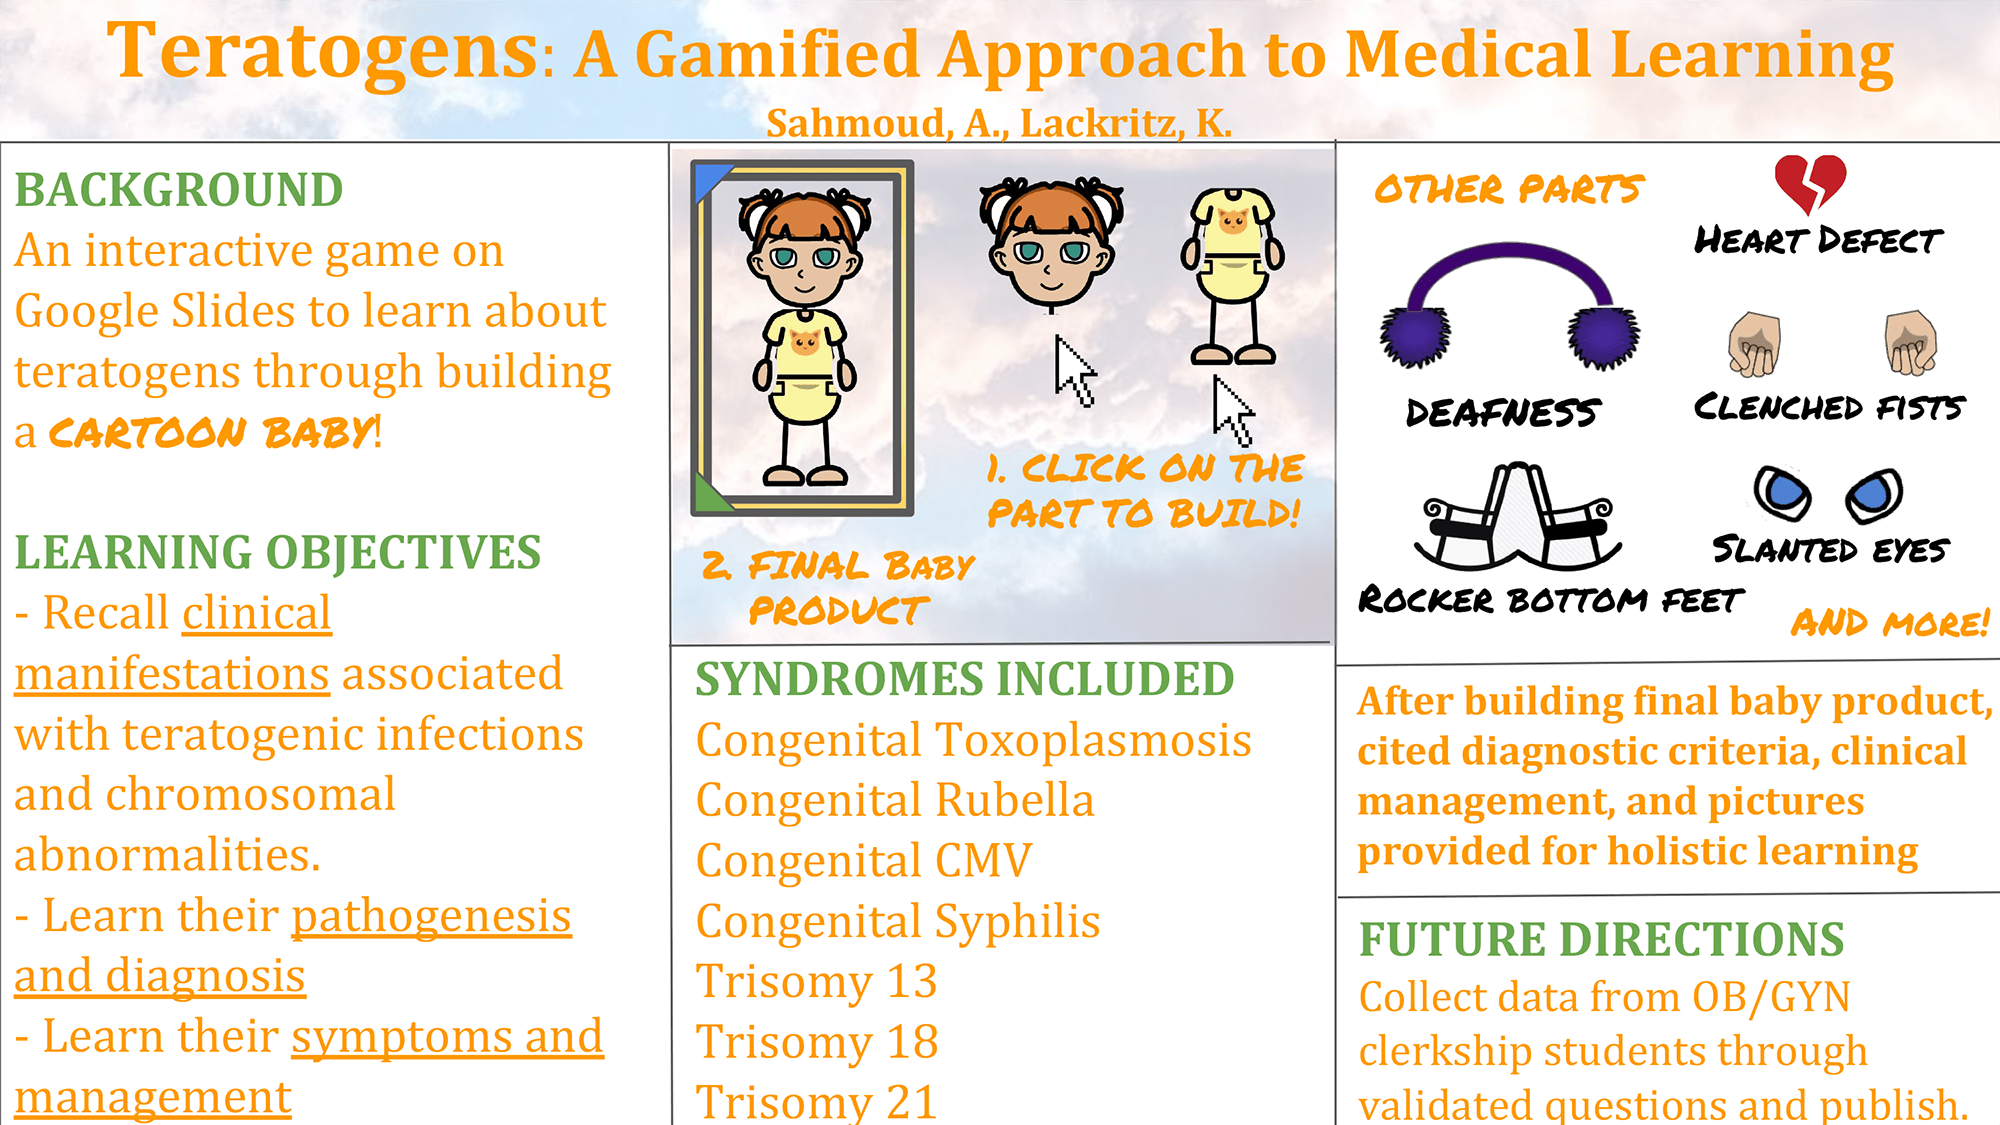 Amine Sahmoud - PAS-32-Teratogens-A-Gamified-Approach-to-Medical-Student-Learning